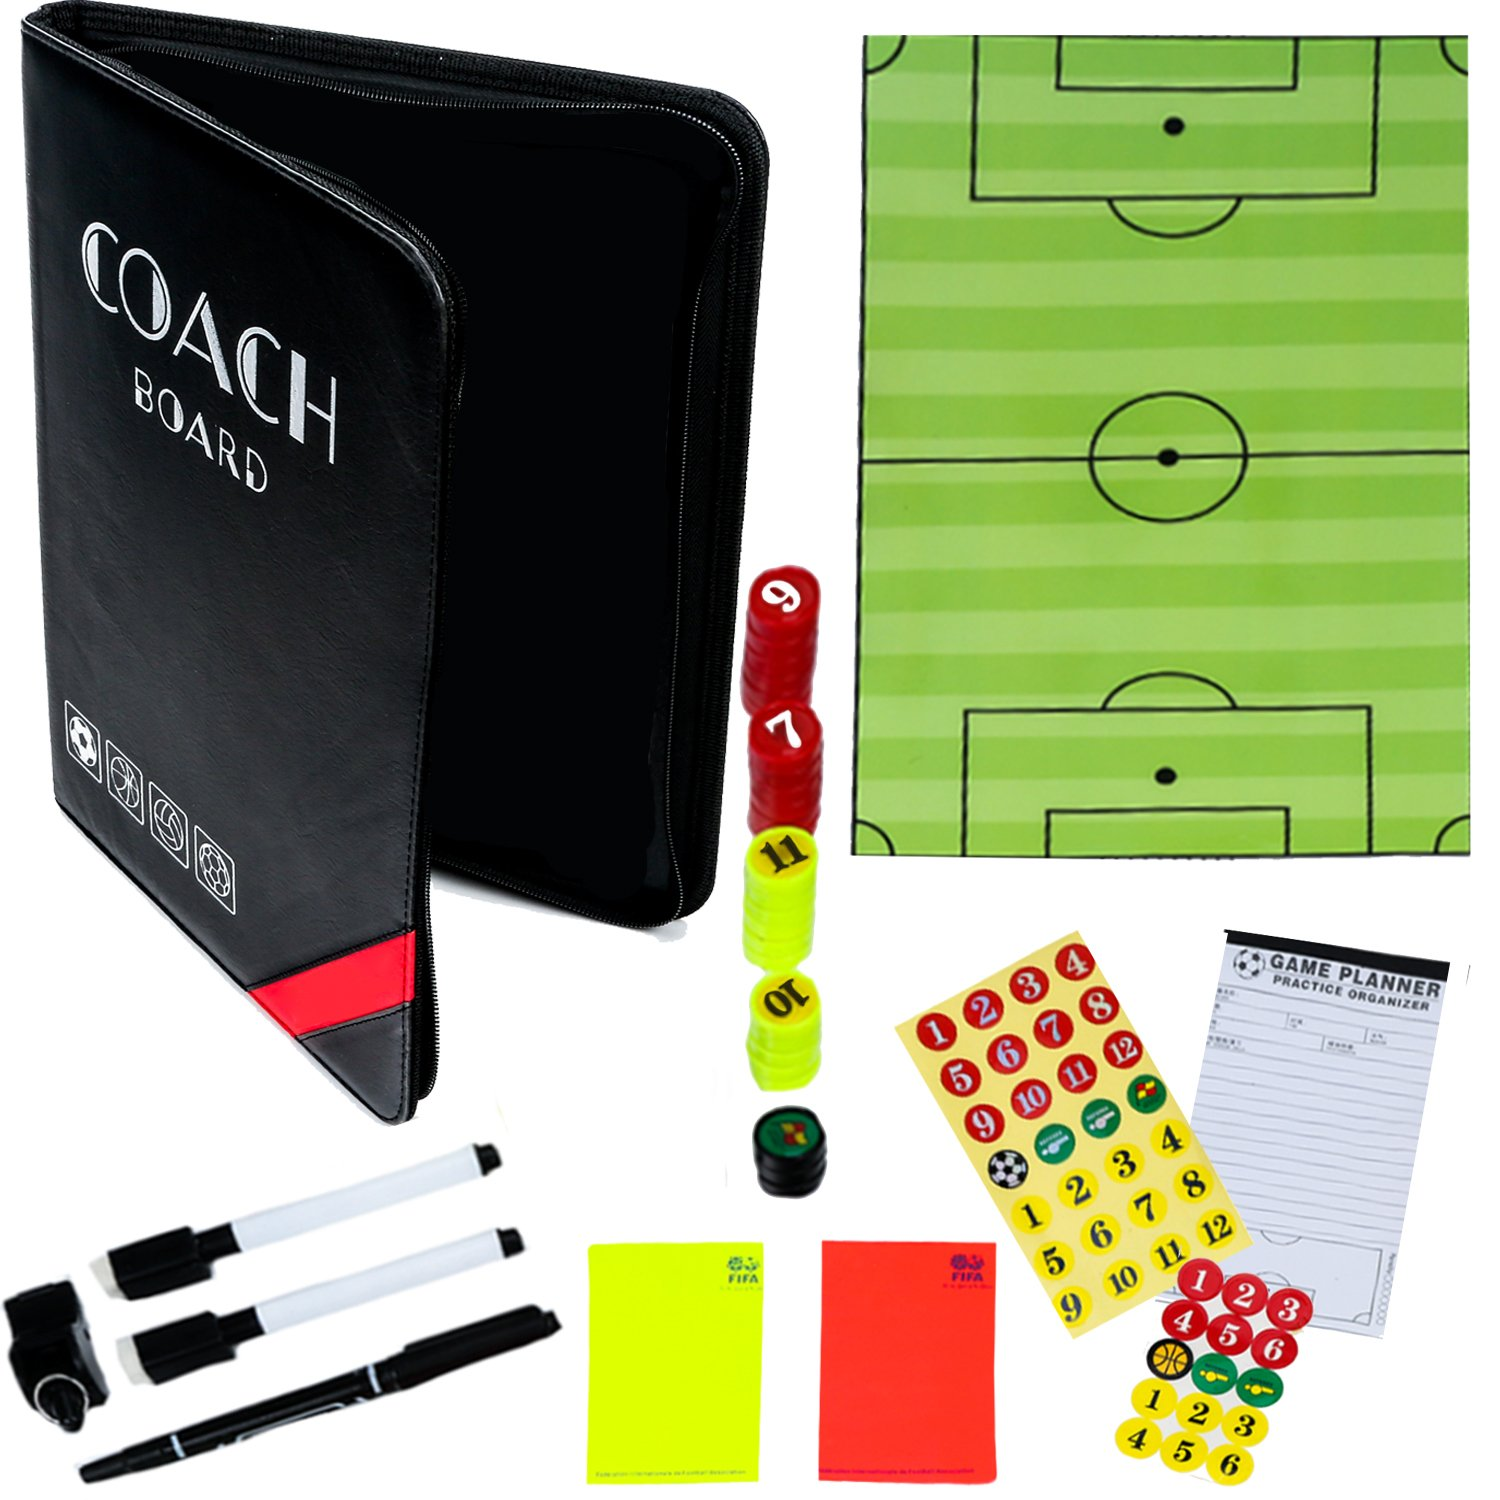 dd7f805e5 Dry-Erase Soccer Coaching Clipboard - Coach's Equipment that Includes  Magnetic Board, Scorebook, Playbook, Whistle, Cards and Extras for  Strategist, ...